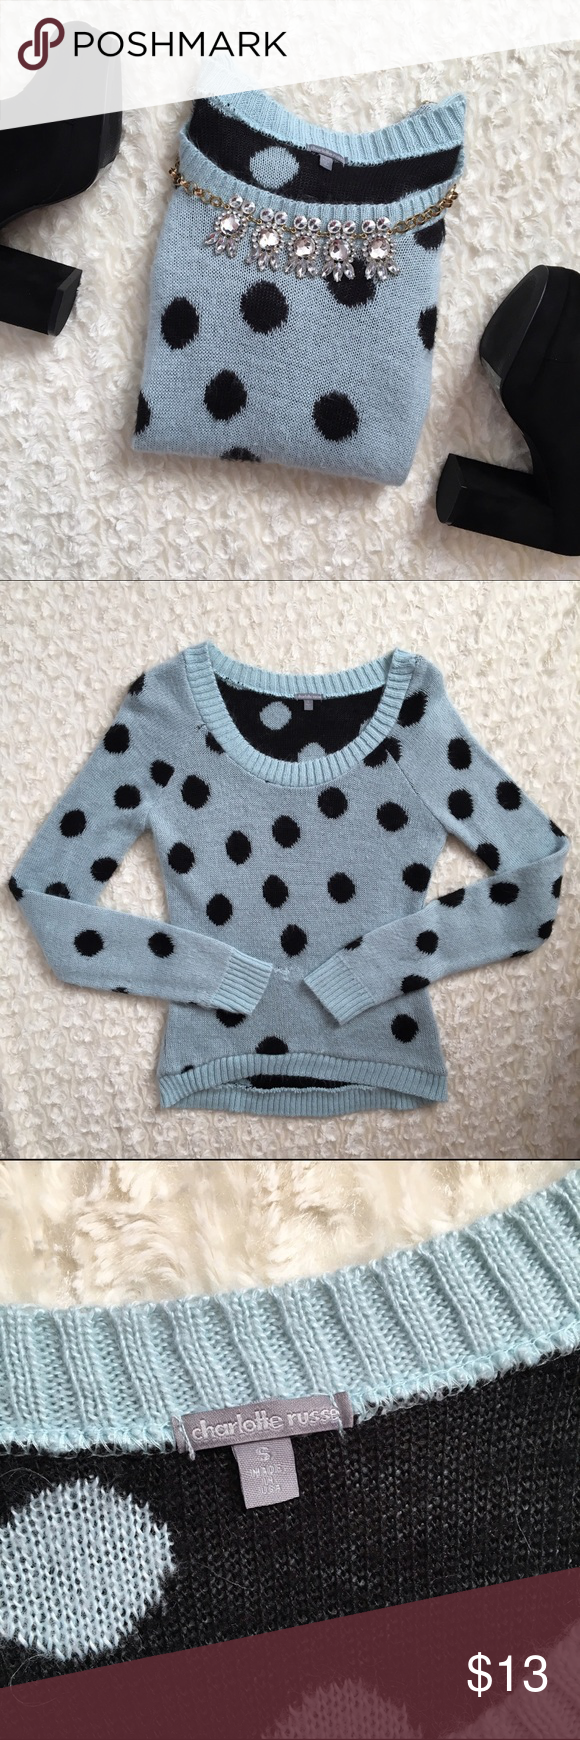 Polka Dot Sweater Blue and black polka dot sweater from Charlotte Russe. Is super soft and had a small hole that was switched up as seen in the last pic. Charlotte Russe Sweaters Crew & Scoop Necks